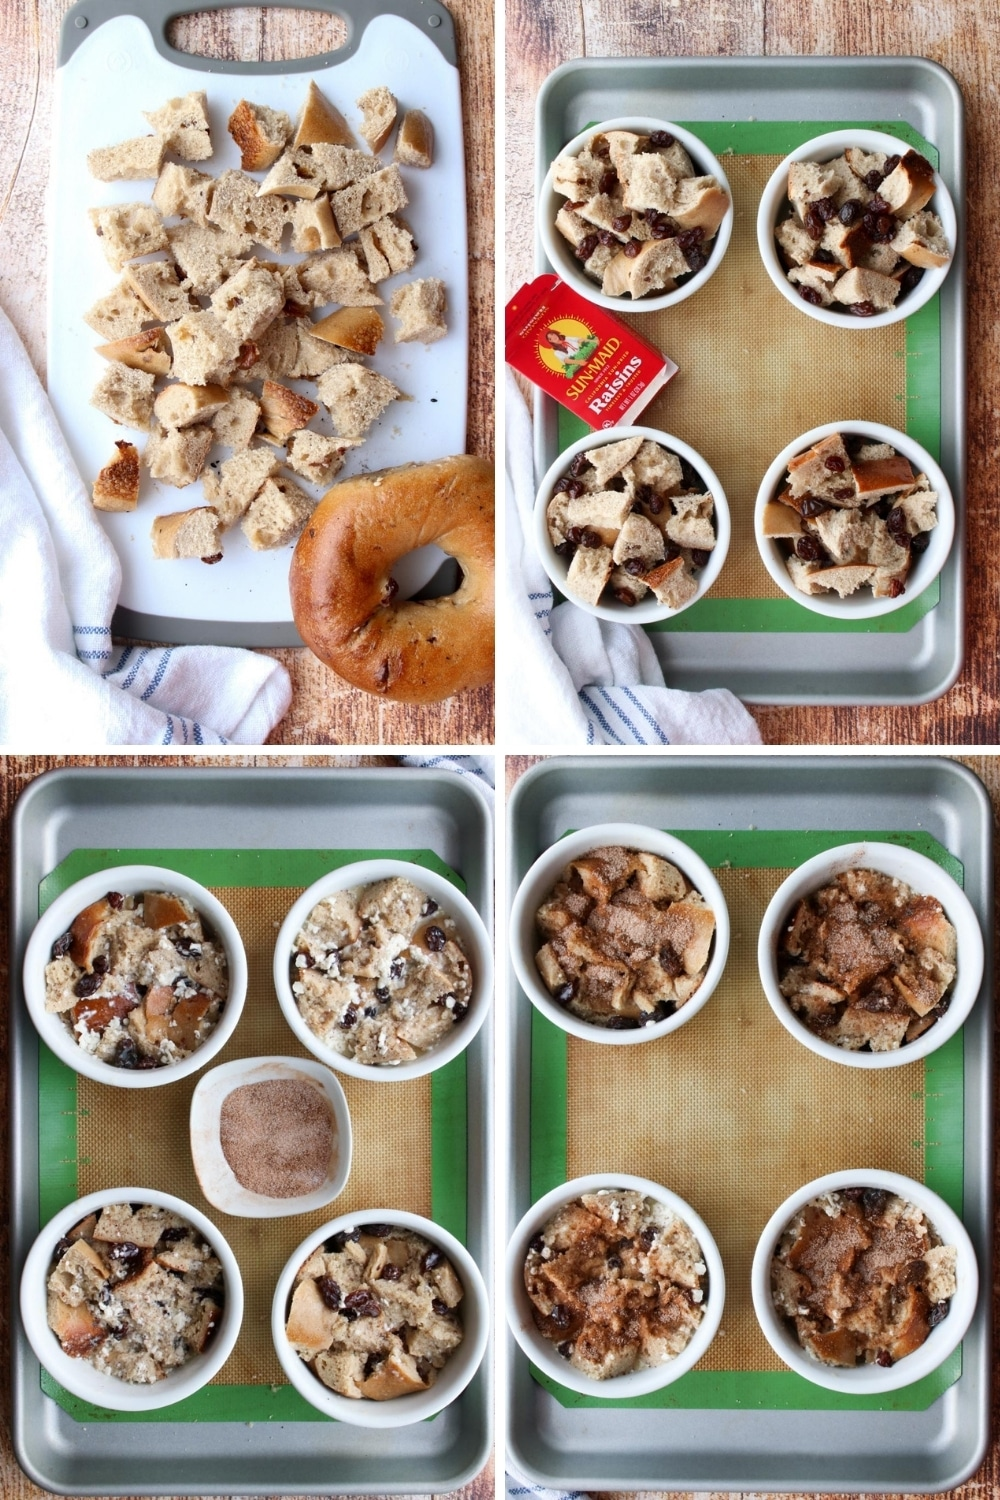 COLLAGE SHOWING STEPS TO MAKE CINNAMON RAISIN BAGEL BREAD PUDDING